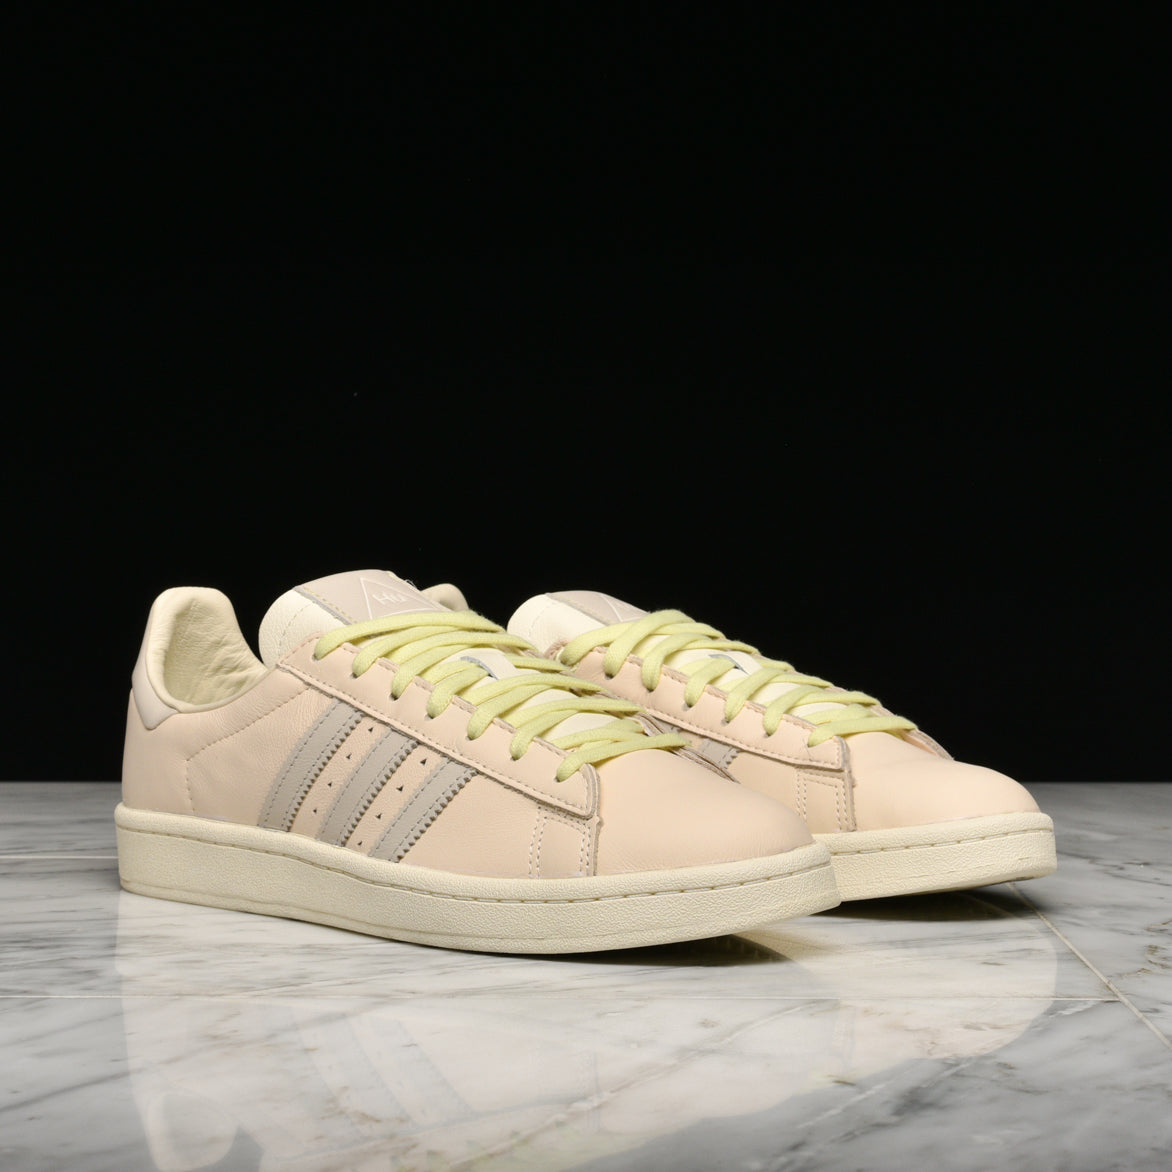 PHARRELL WILLIAMS X ADIDAS CAMPUS - ECRU TINT /CREAM WHITE / CLEAR BROWN